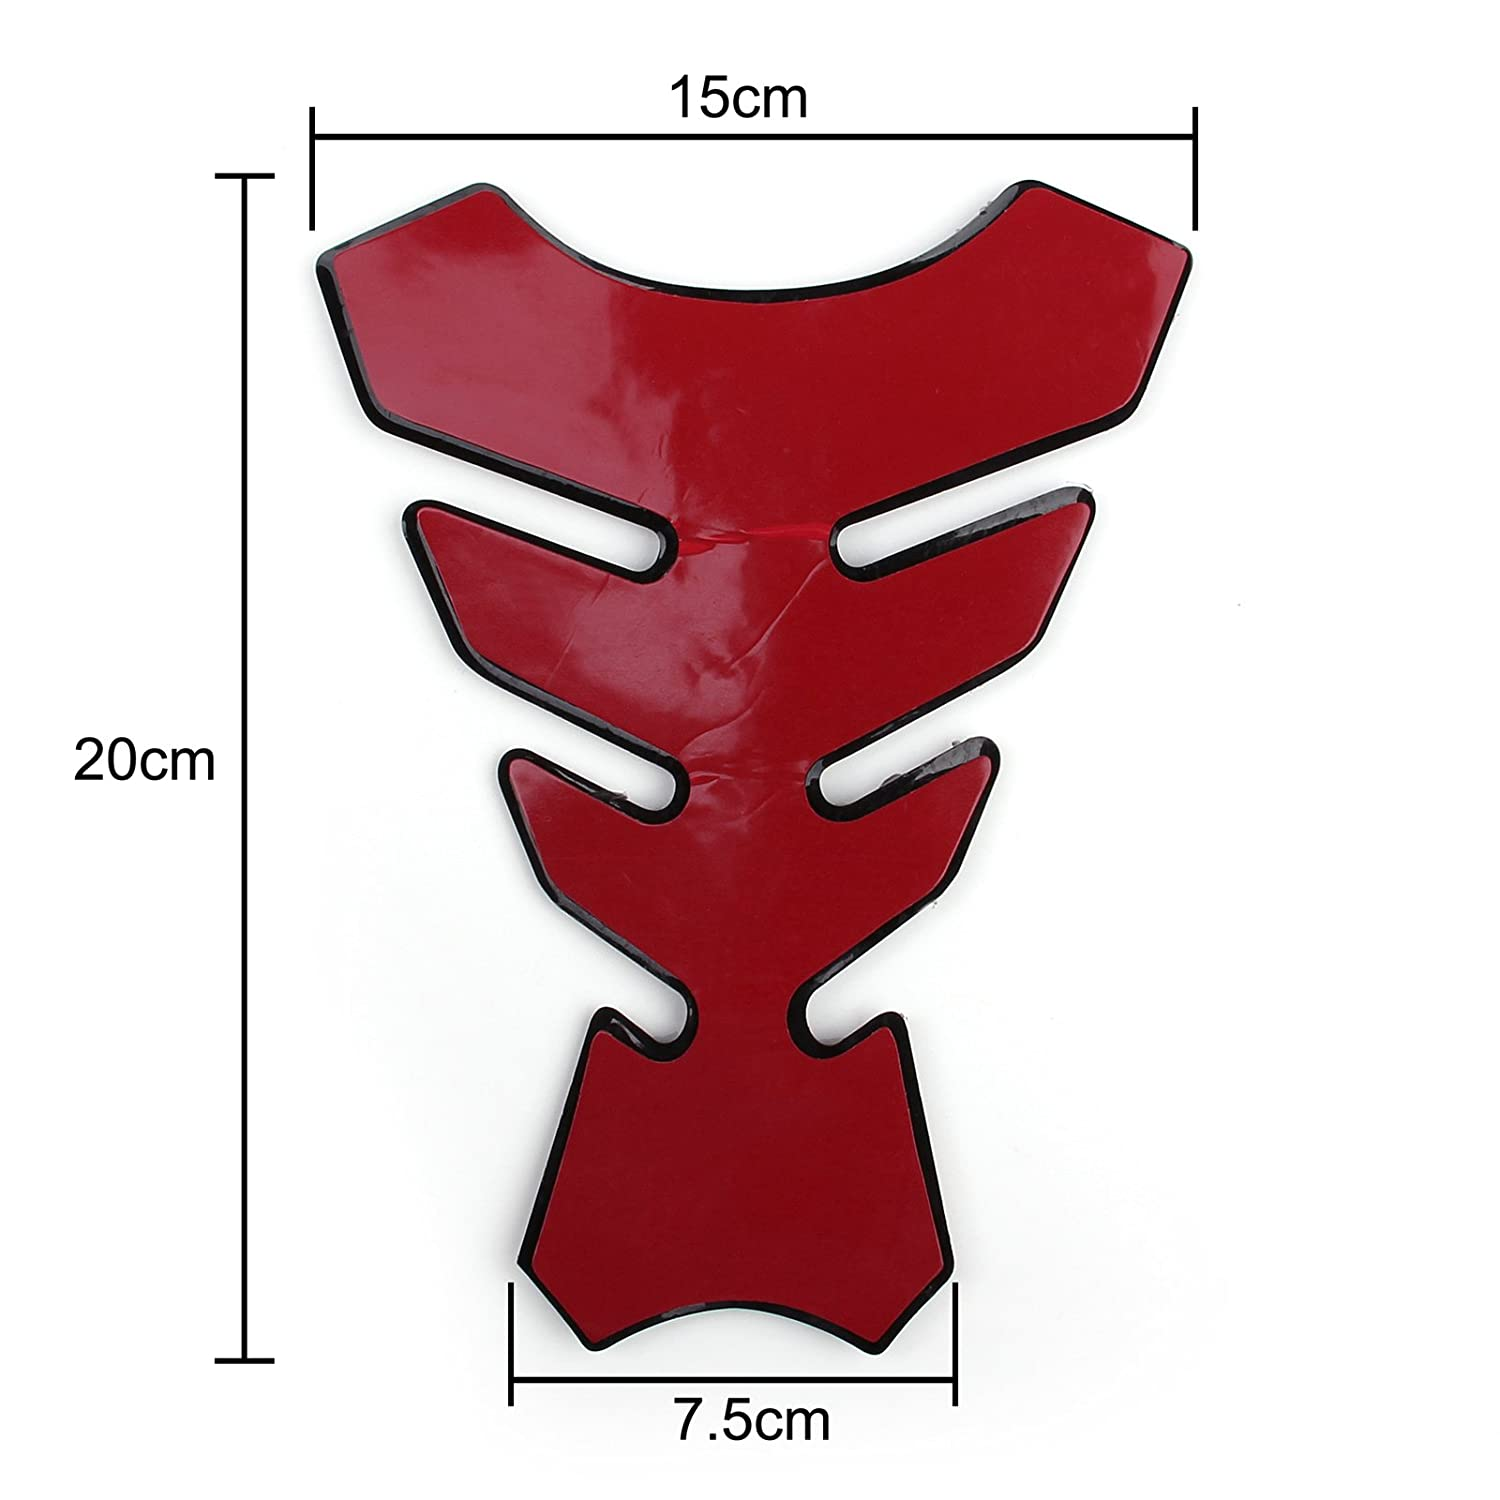 Areyourshop 3D Rubber Tank Pad Protector Gas Motorcycle For Kawasaki ZX 6R